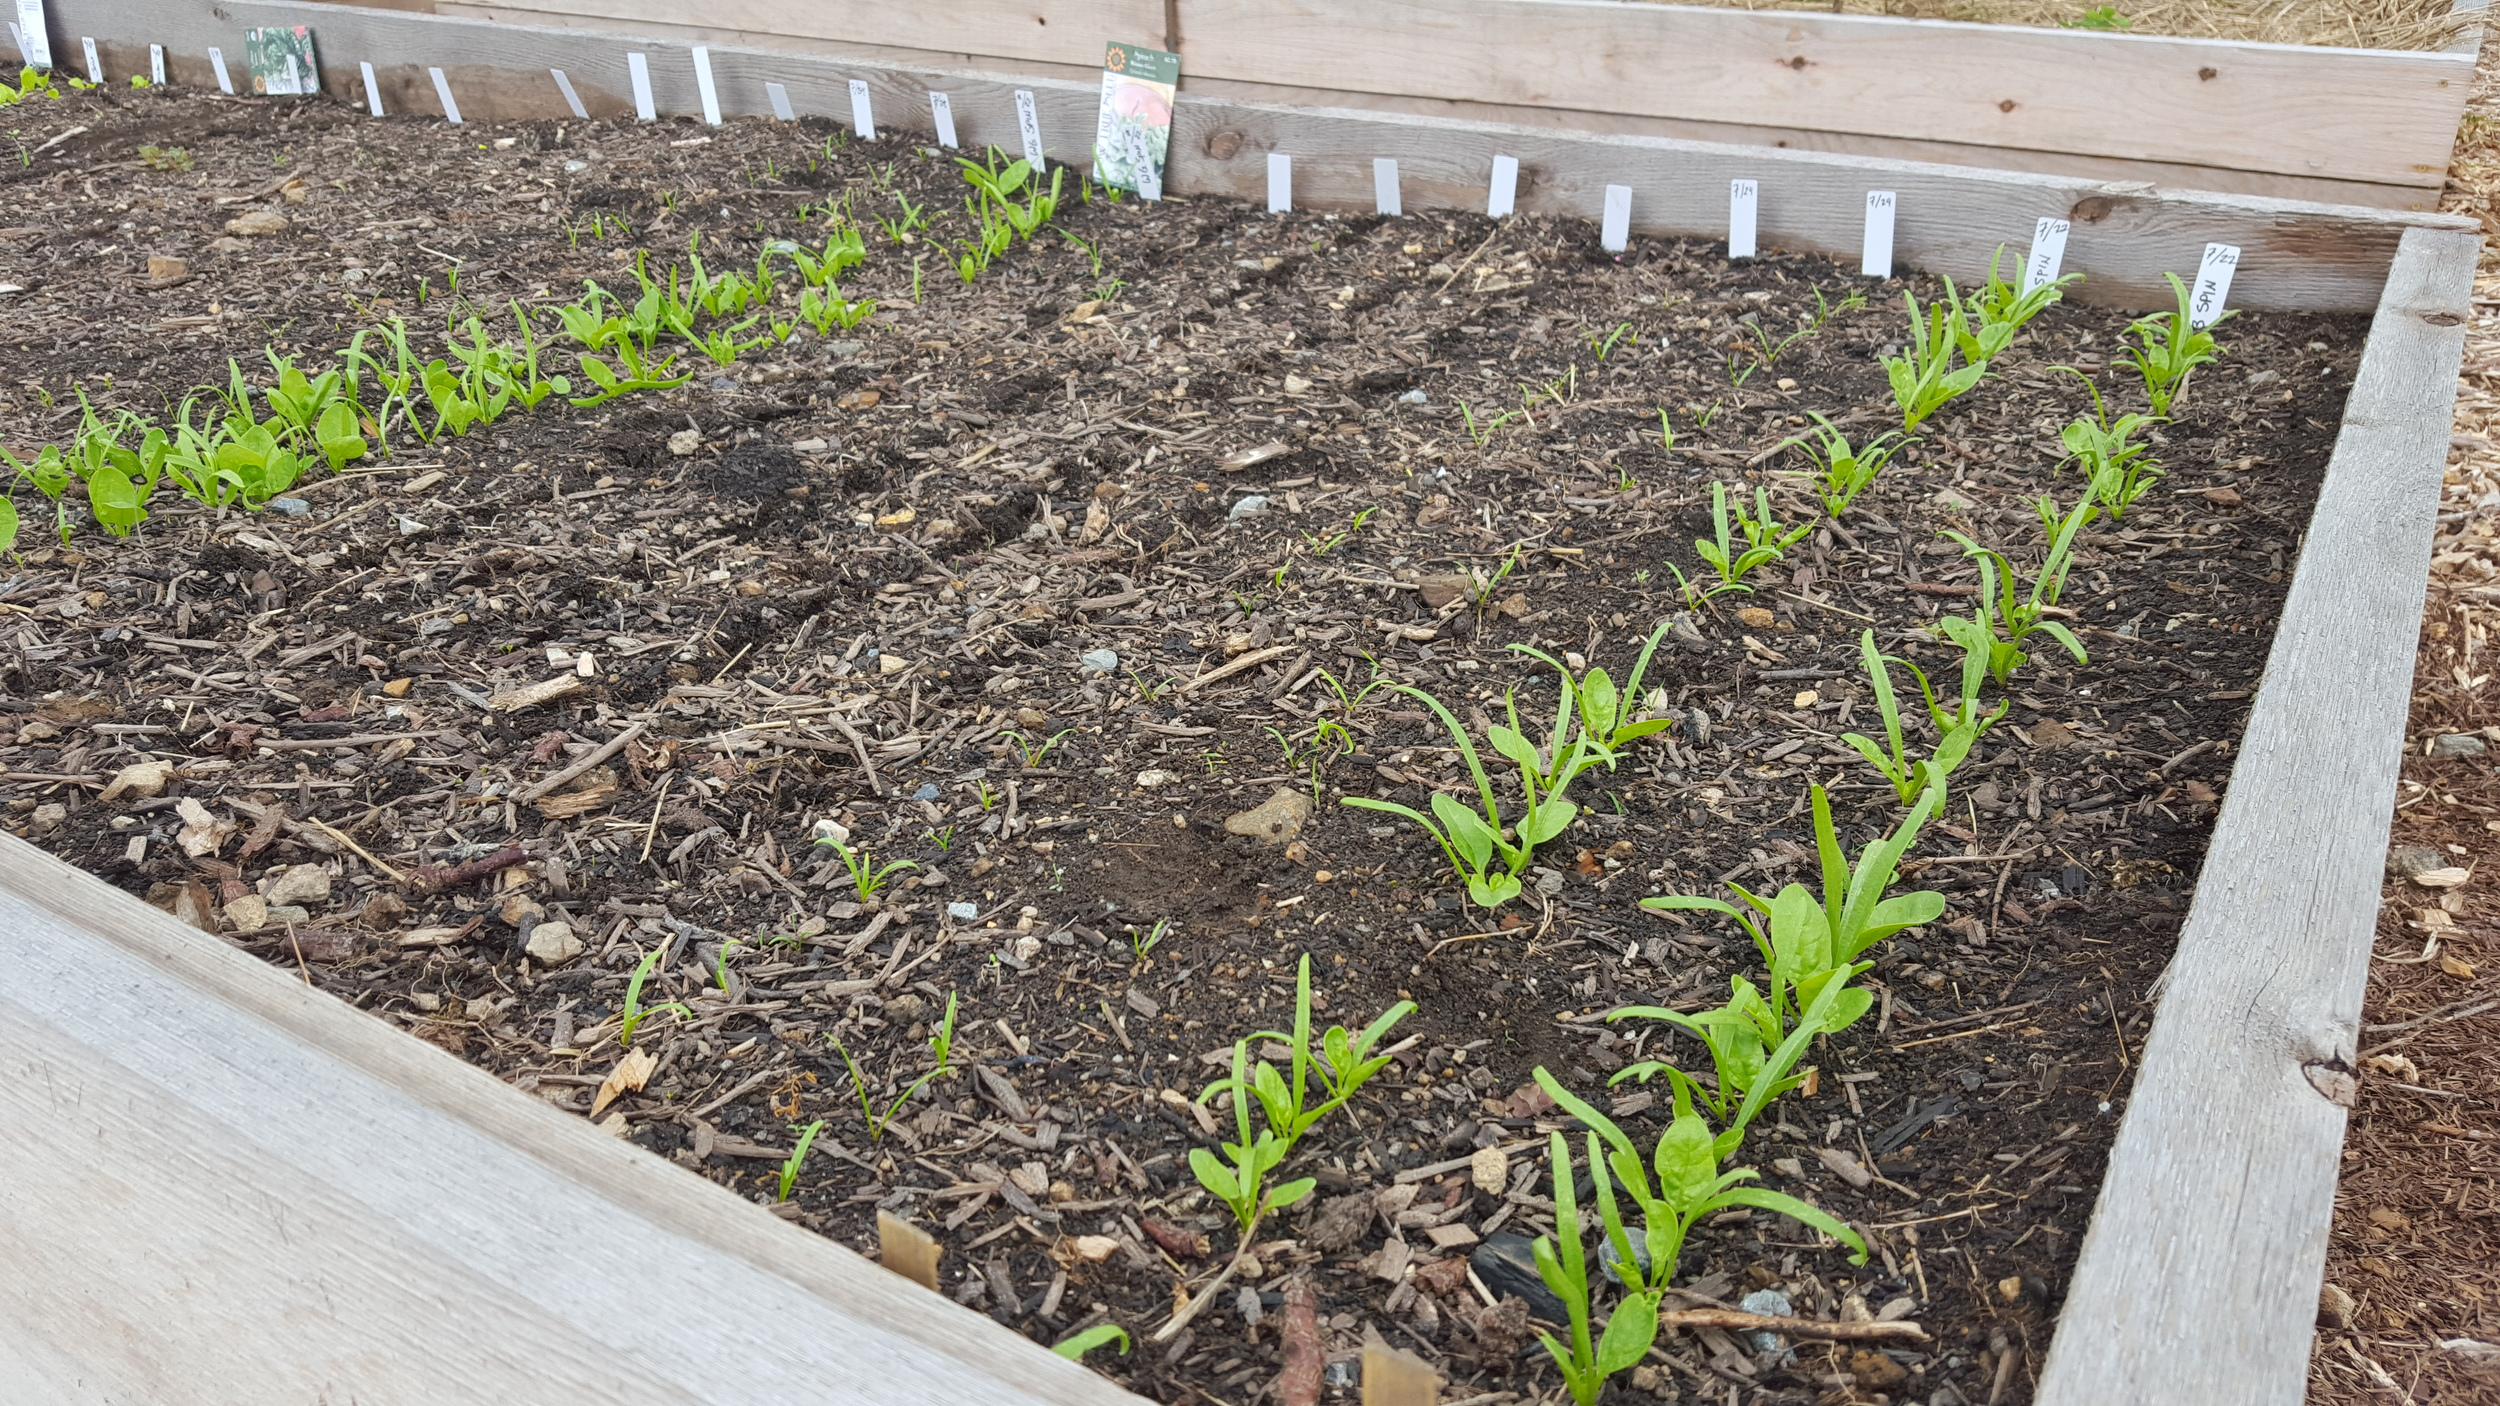 Staggering weekly plantings of spinach and lettuce is a good way to get the most out of our maturing veggies while also allowing us to dial in the best planting dates.  Once a week we plant new rows for 3 -4 weeks total.  Raised beds and proper planning make this technique optimal for us.